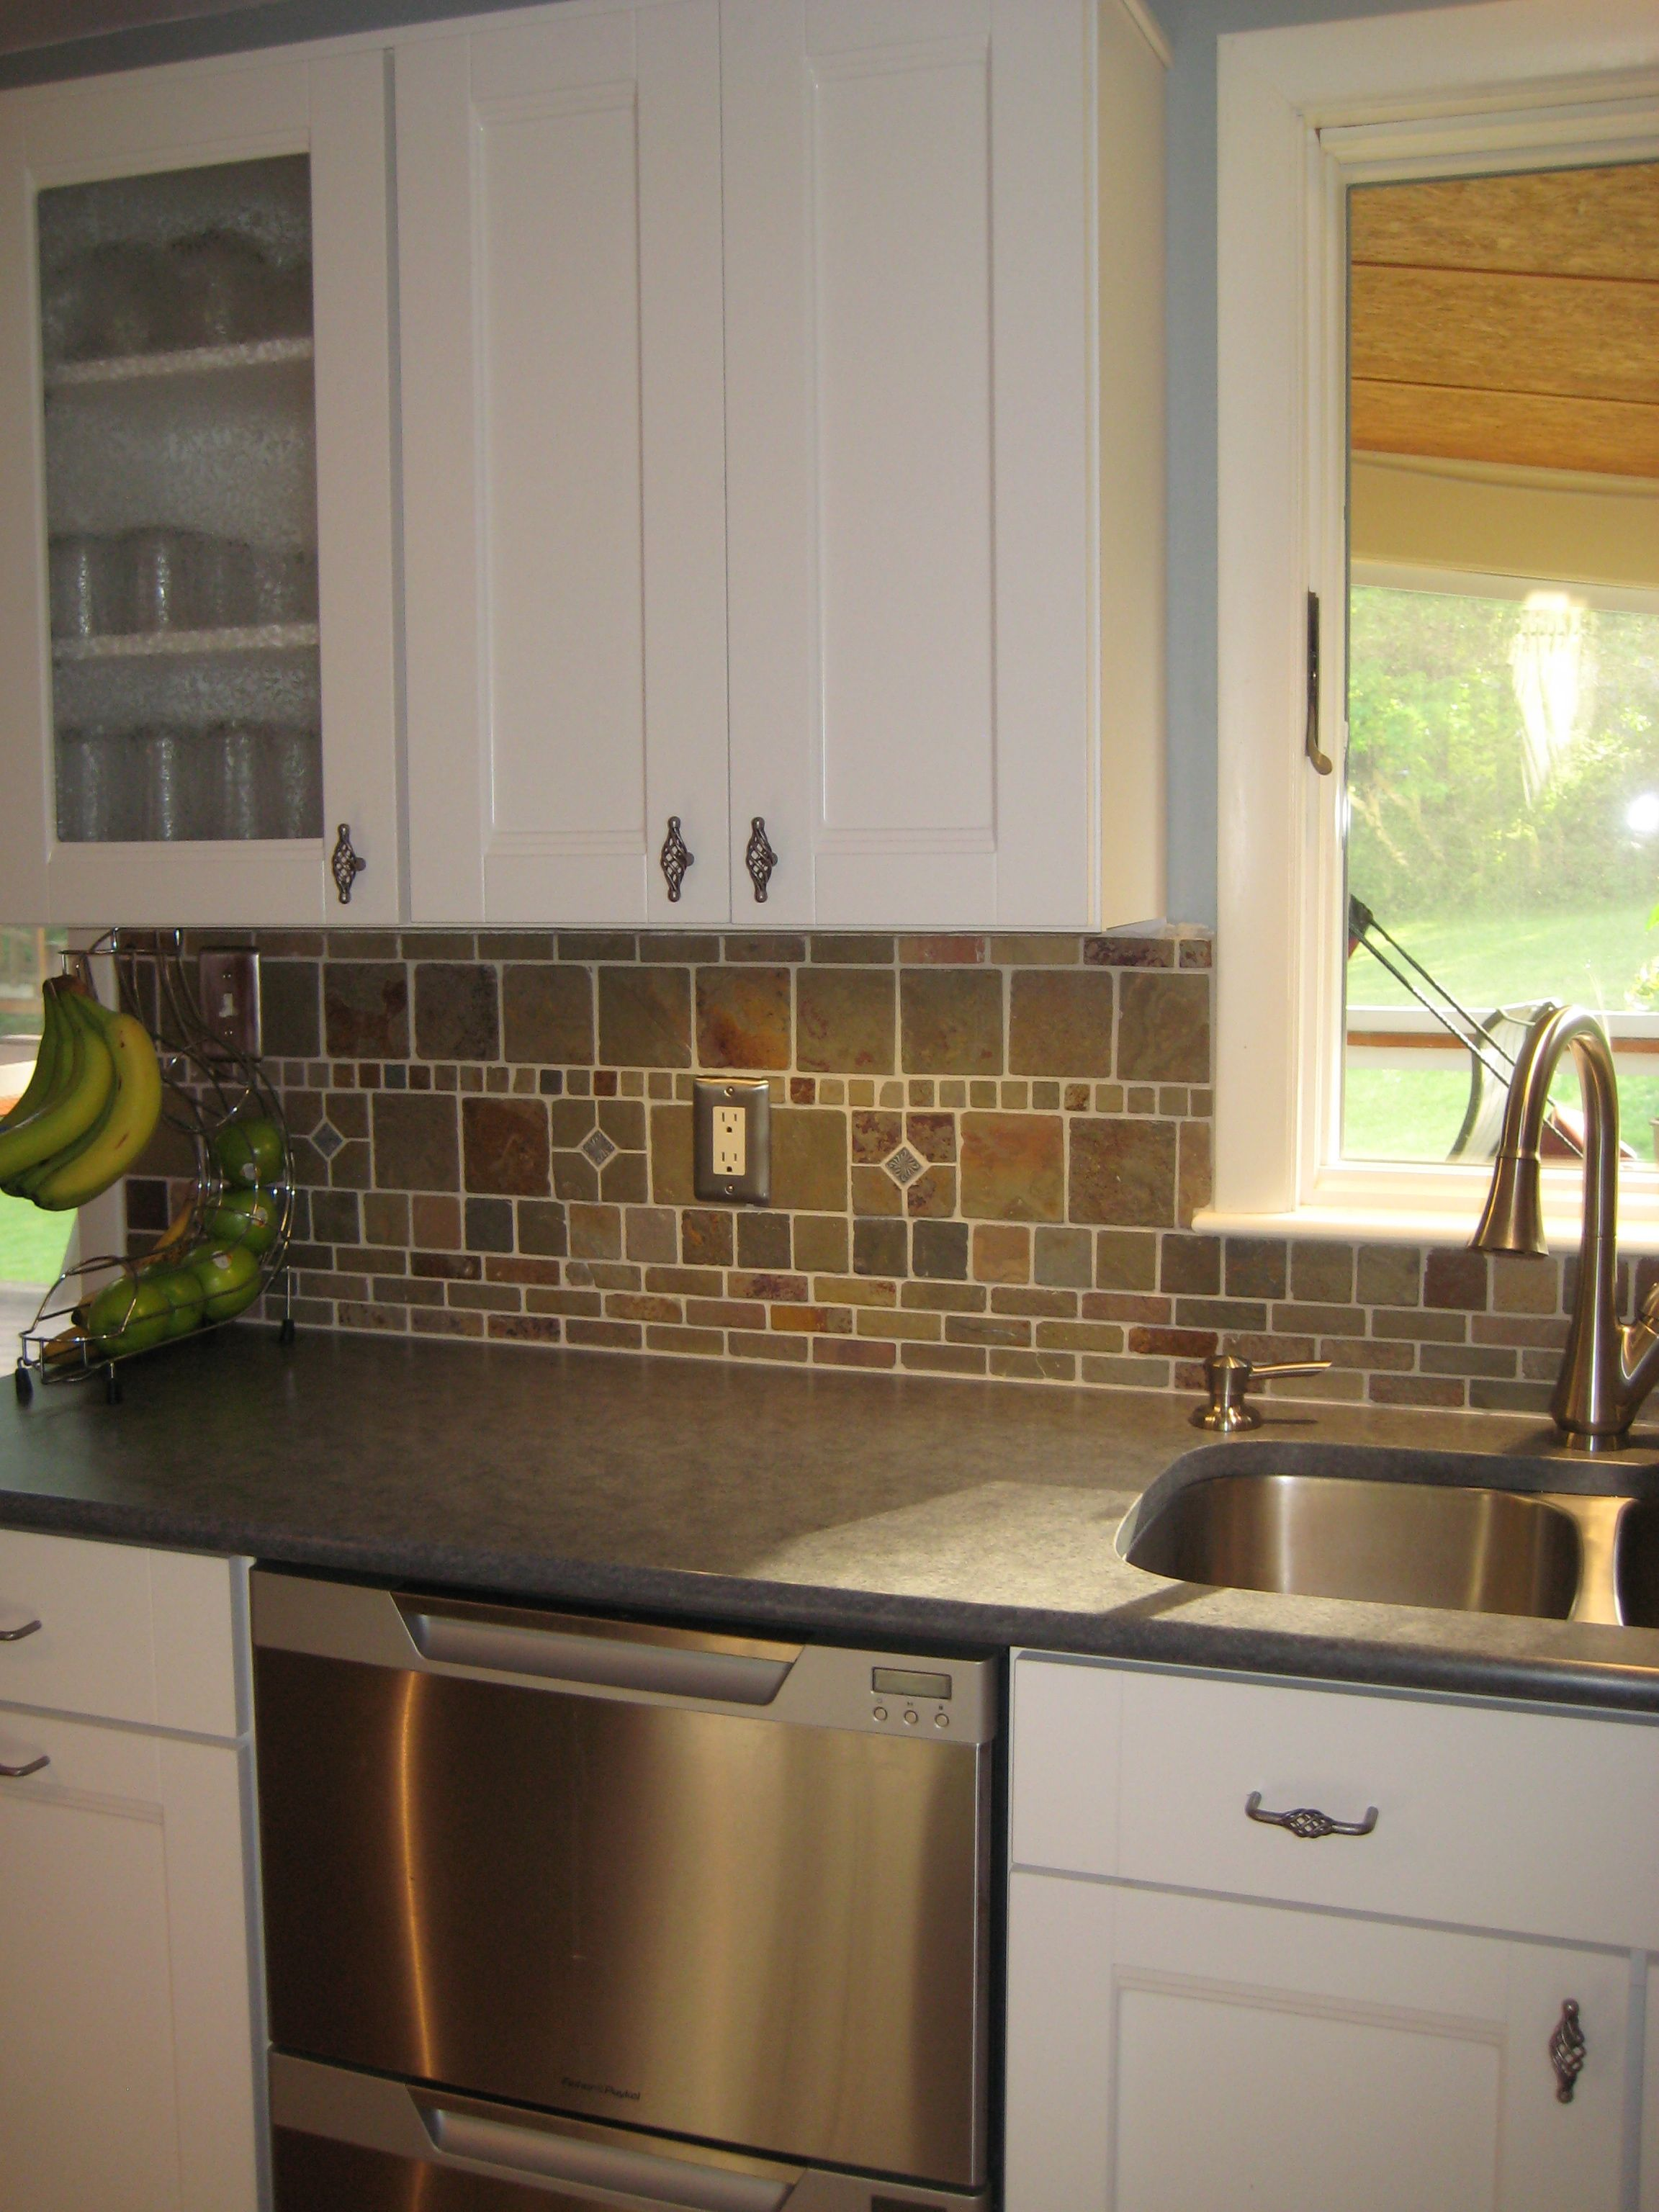 Kitchen Cabinets And Countertops White Laminate Dark Slate Backsplash